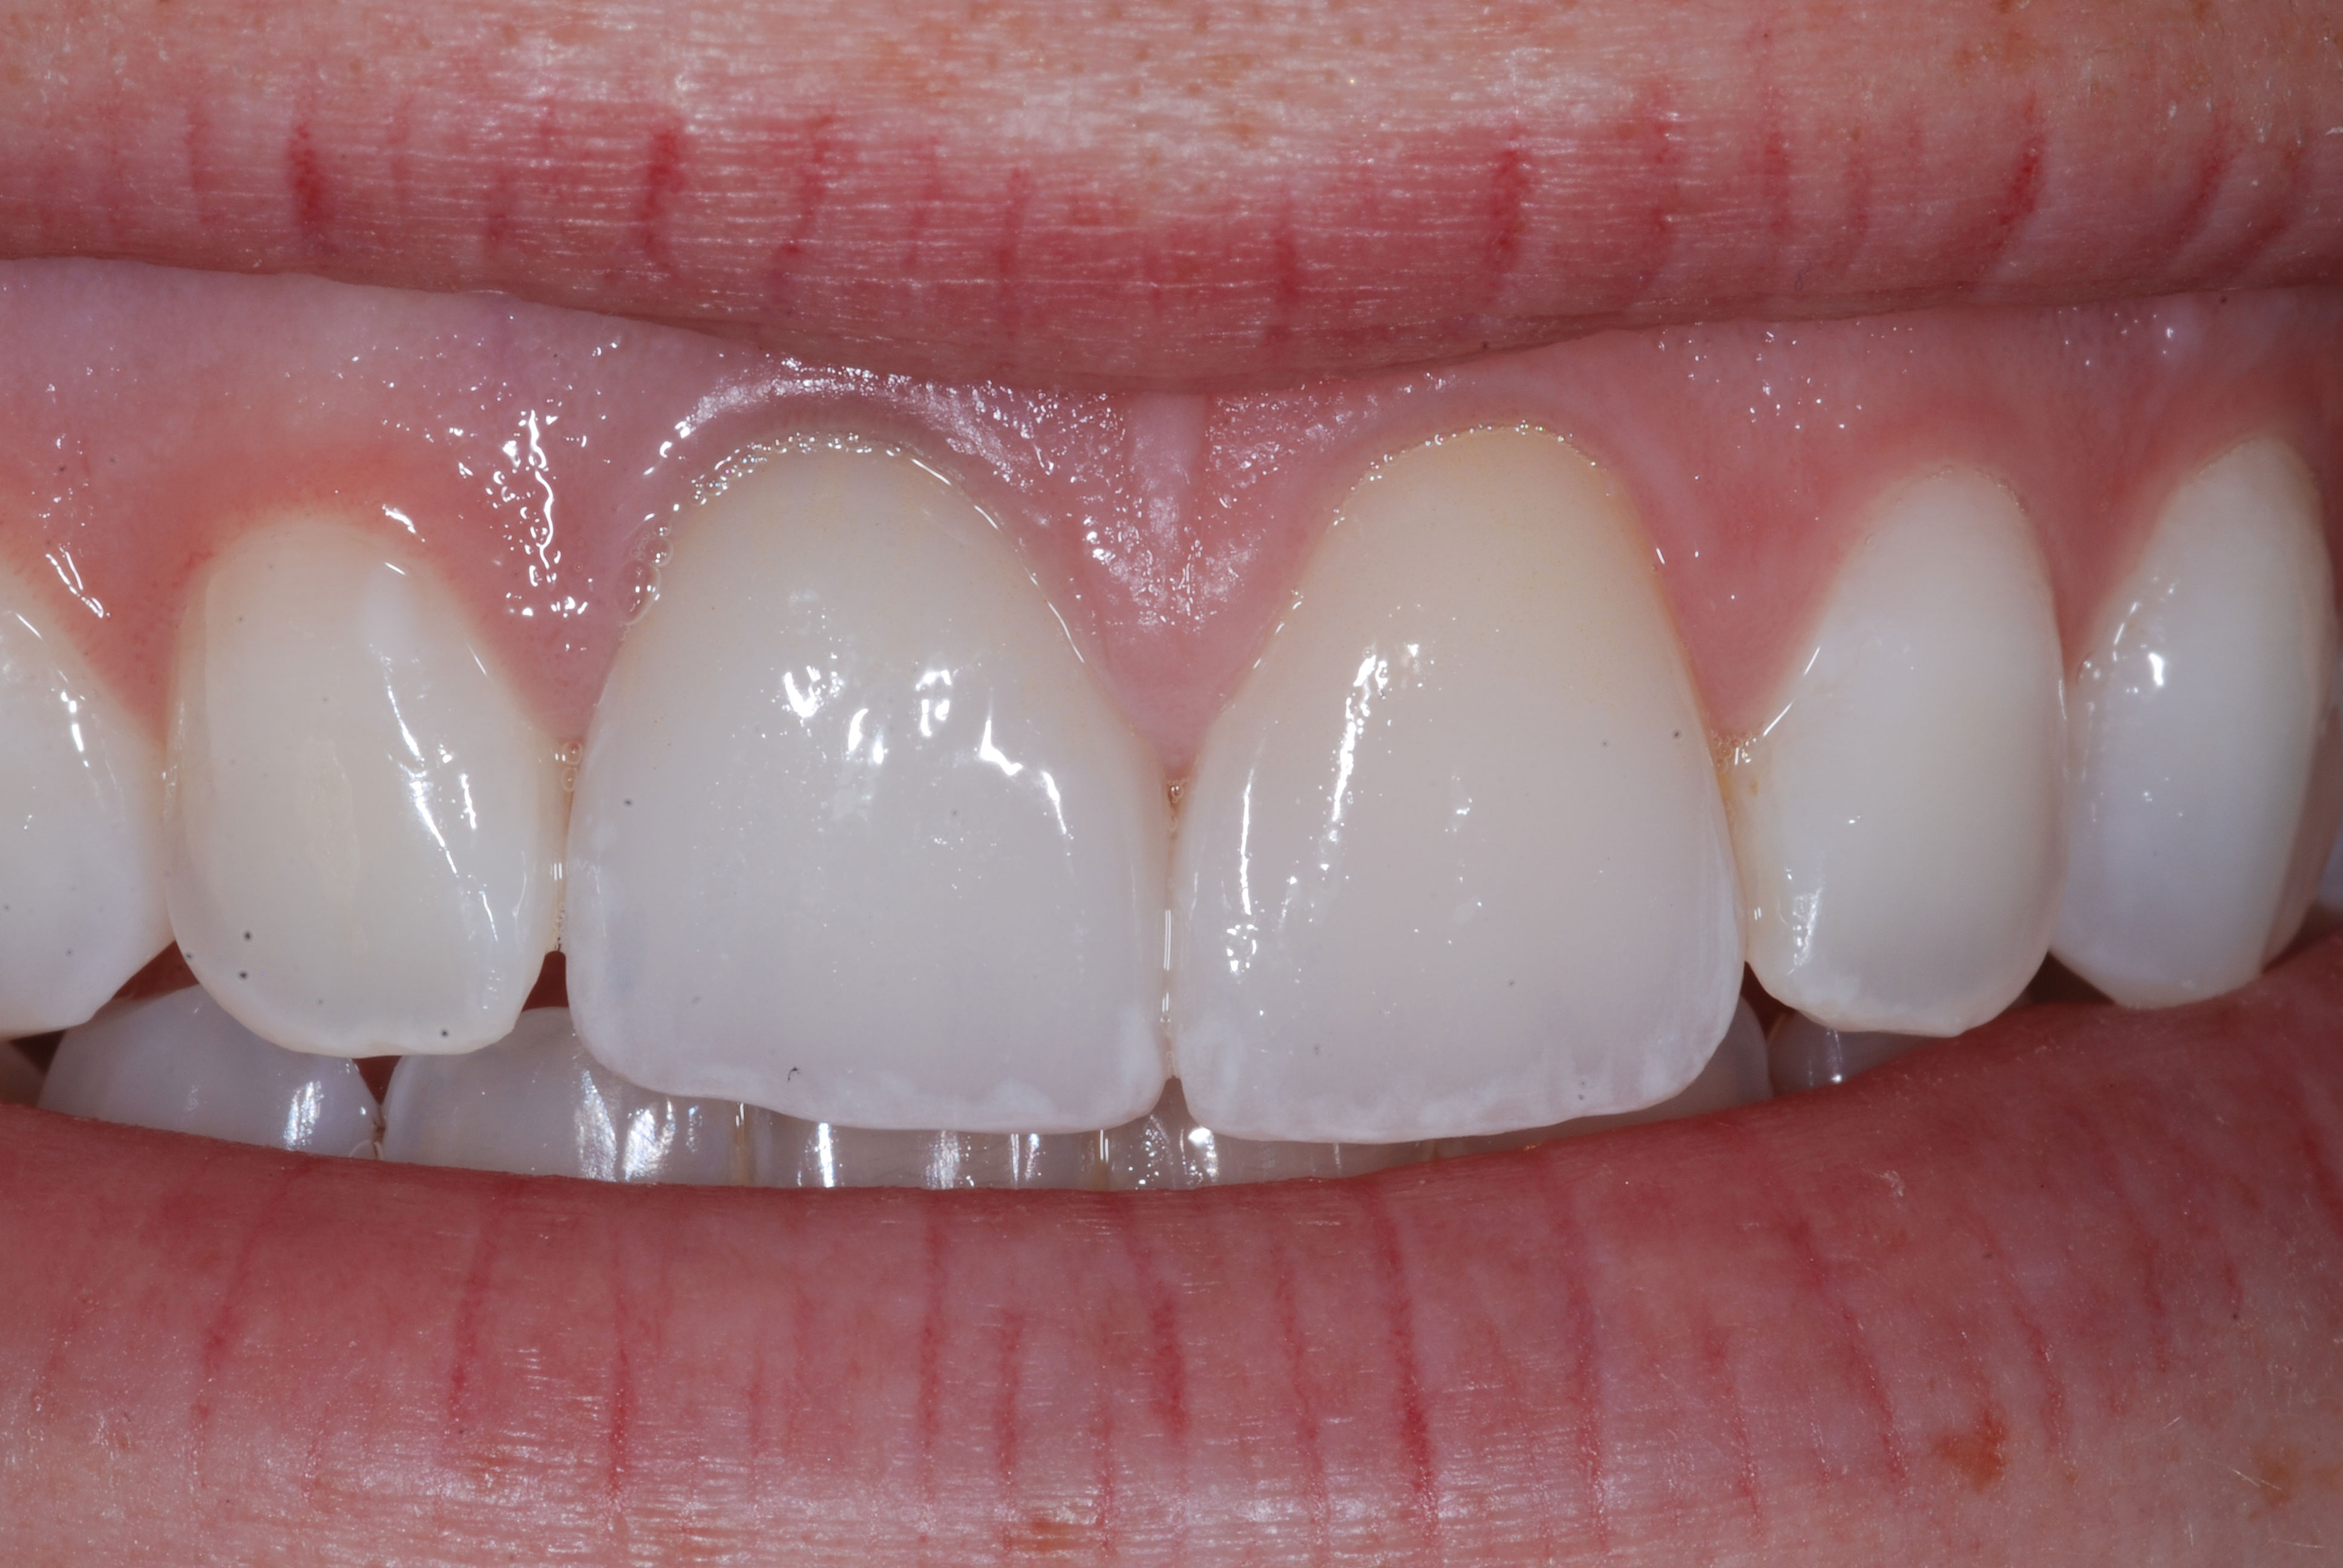 Related post - Conservative Esthetic Dentistry